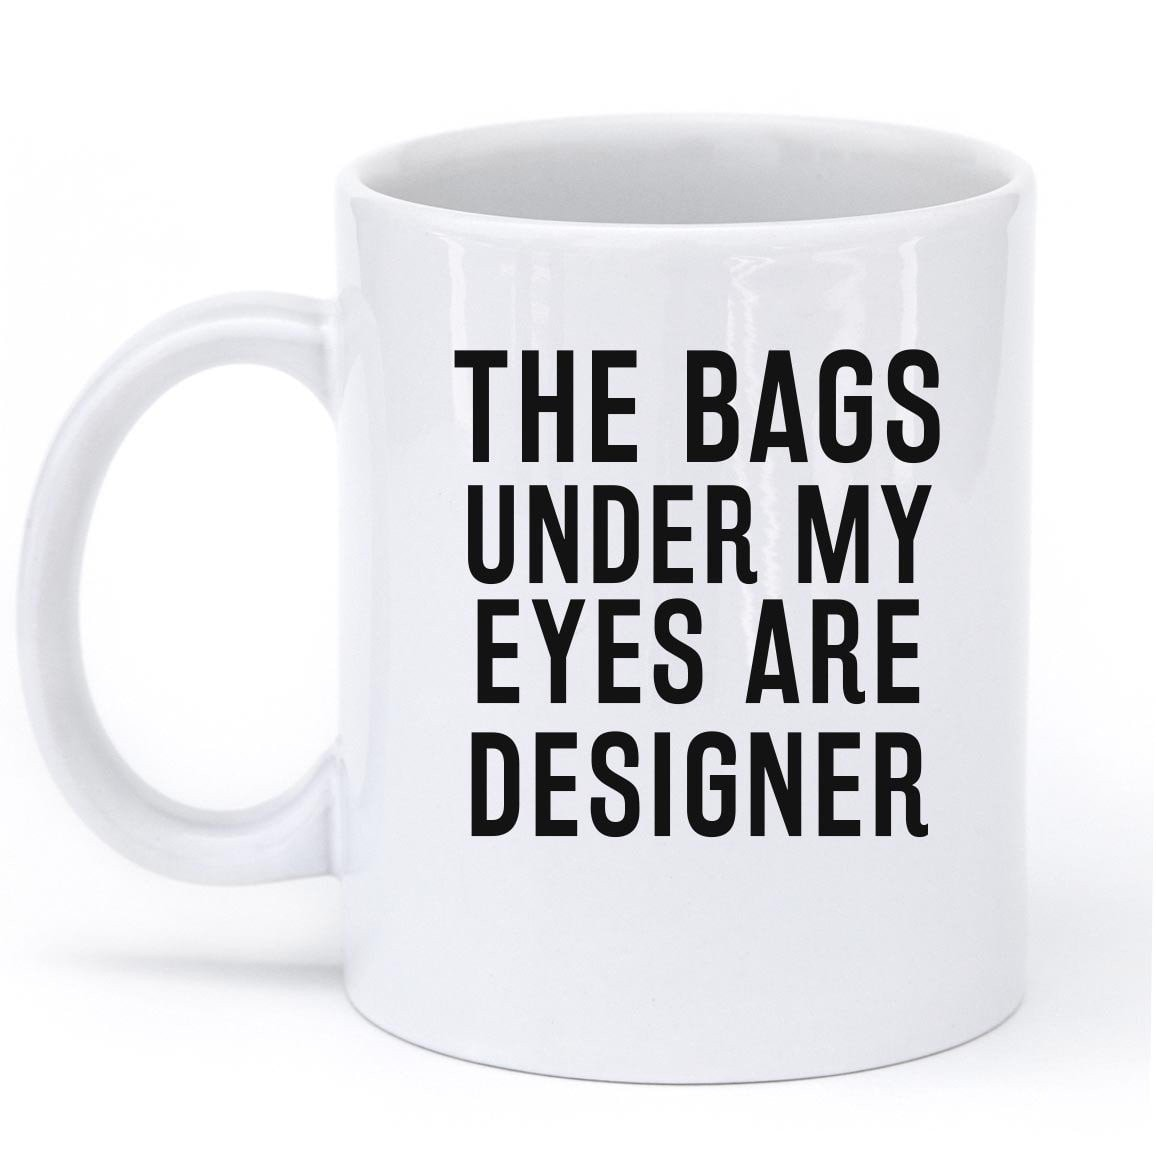 THE BAGS UNDER MY EYES ARE DESIGNER MUG - Shirtoopia